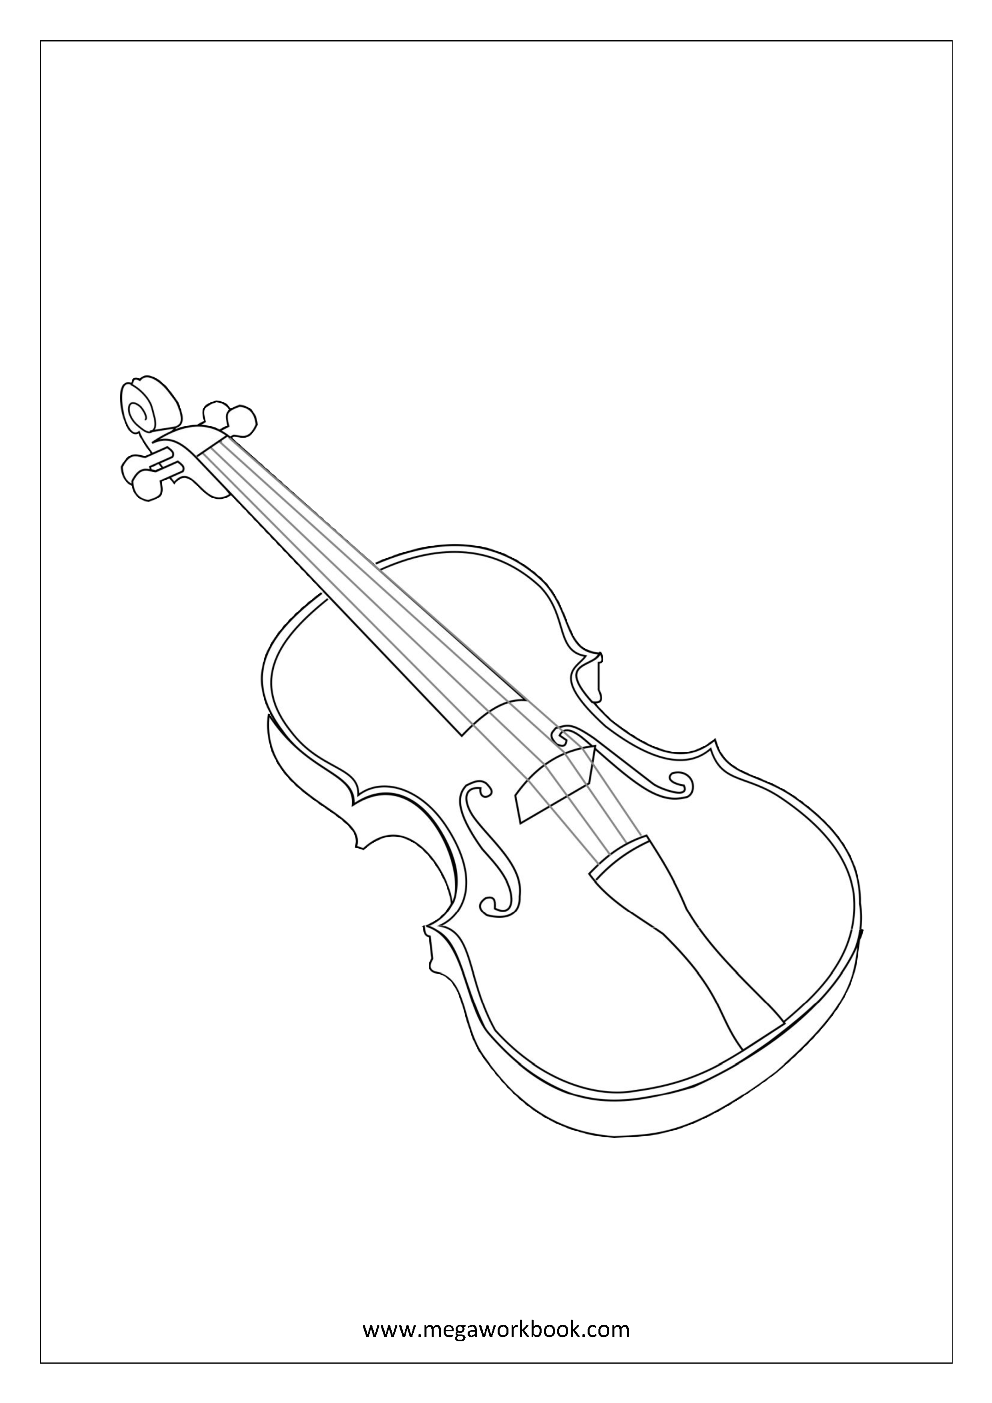 dessin coloriage violoncelle dessin instrument de musique coloring page violin instrument. Black Bedroom Furniture Sets. Home Design Ideas